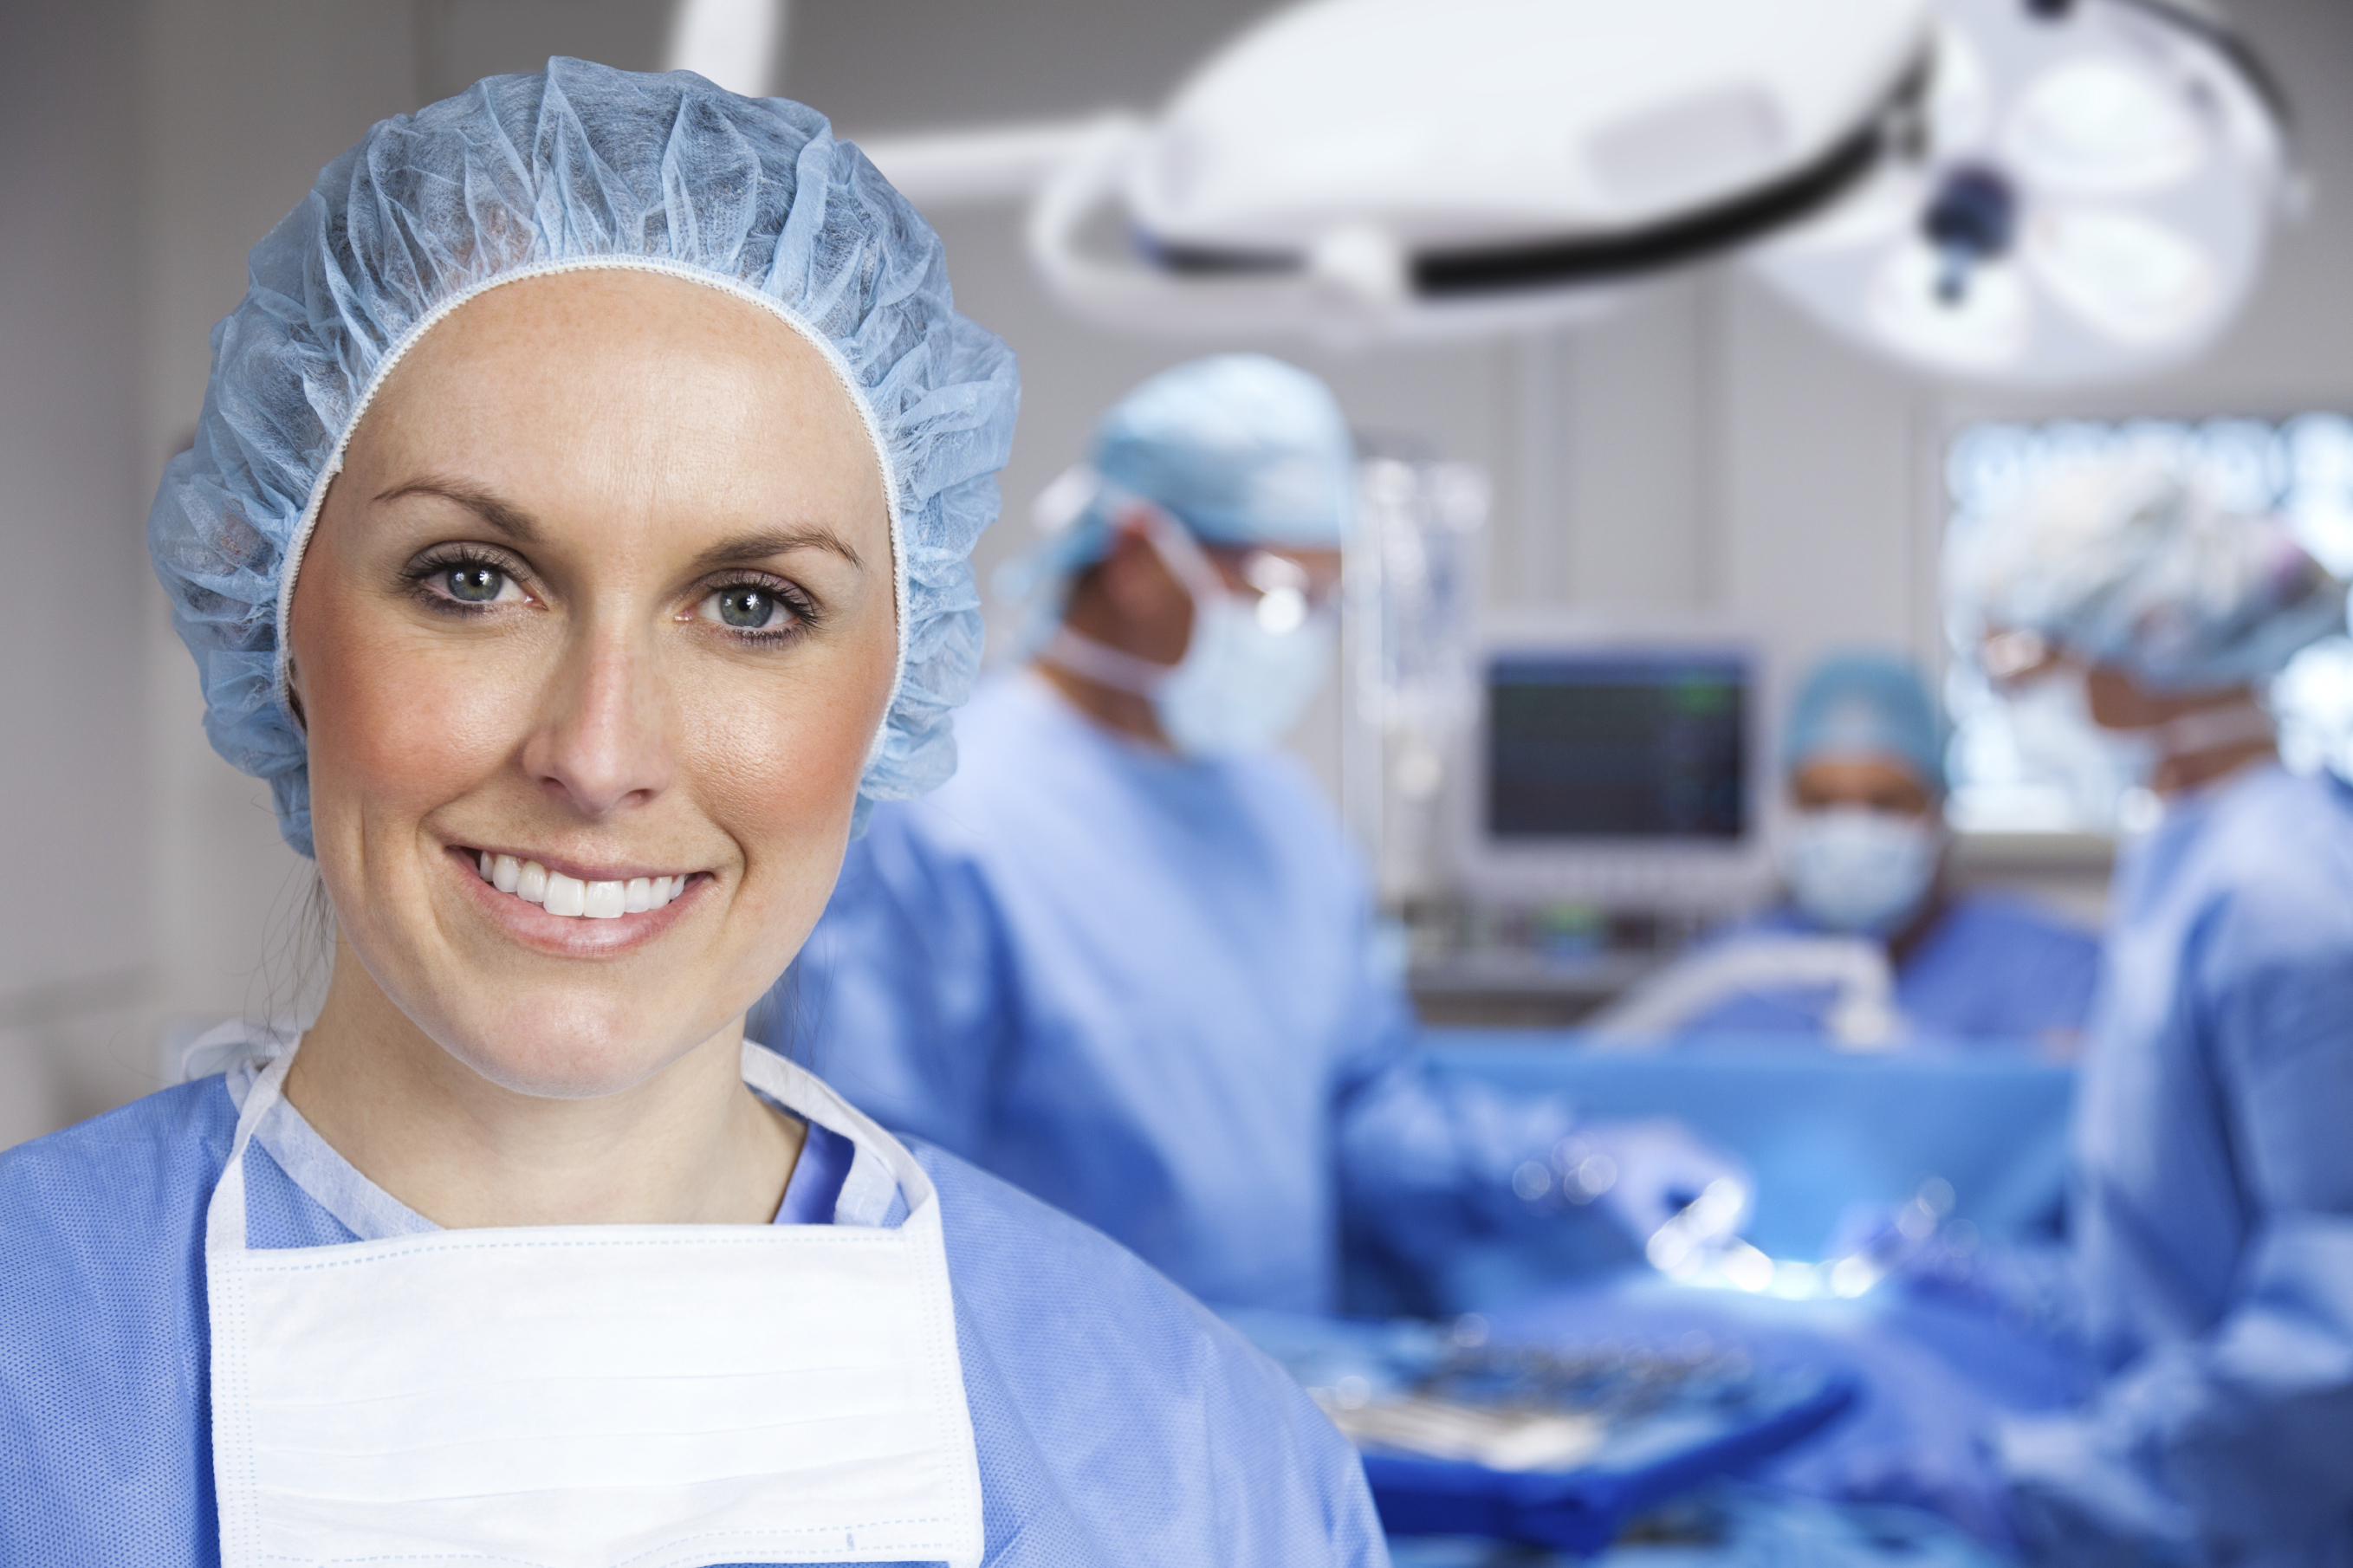 Why being a board certified Plastic Surgeon matters